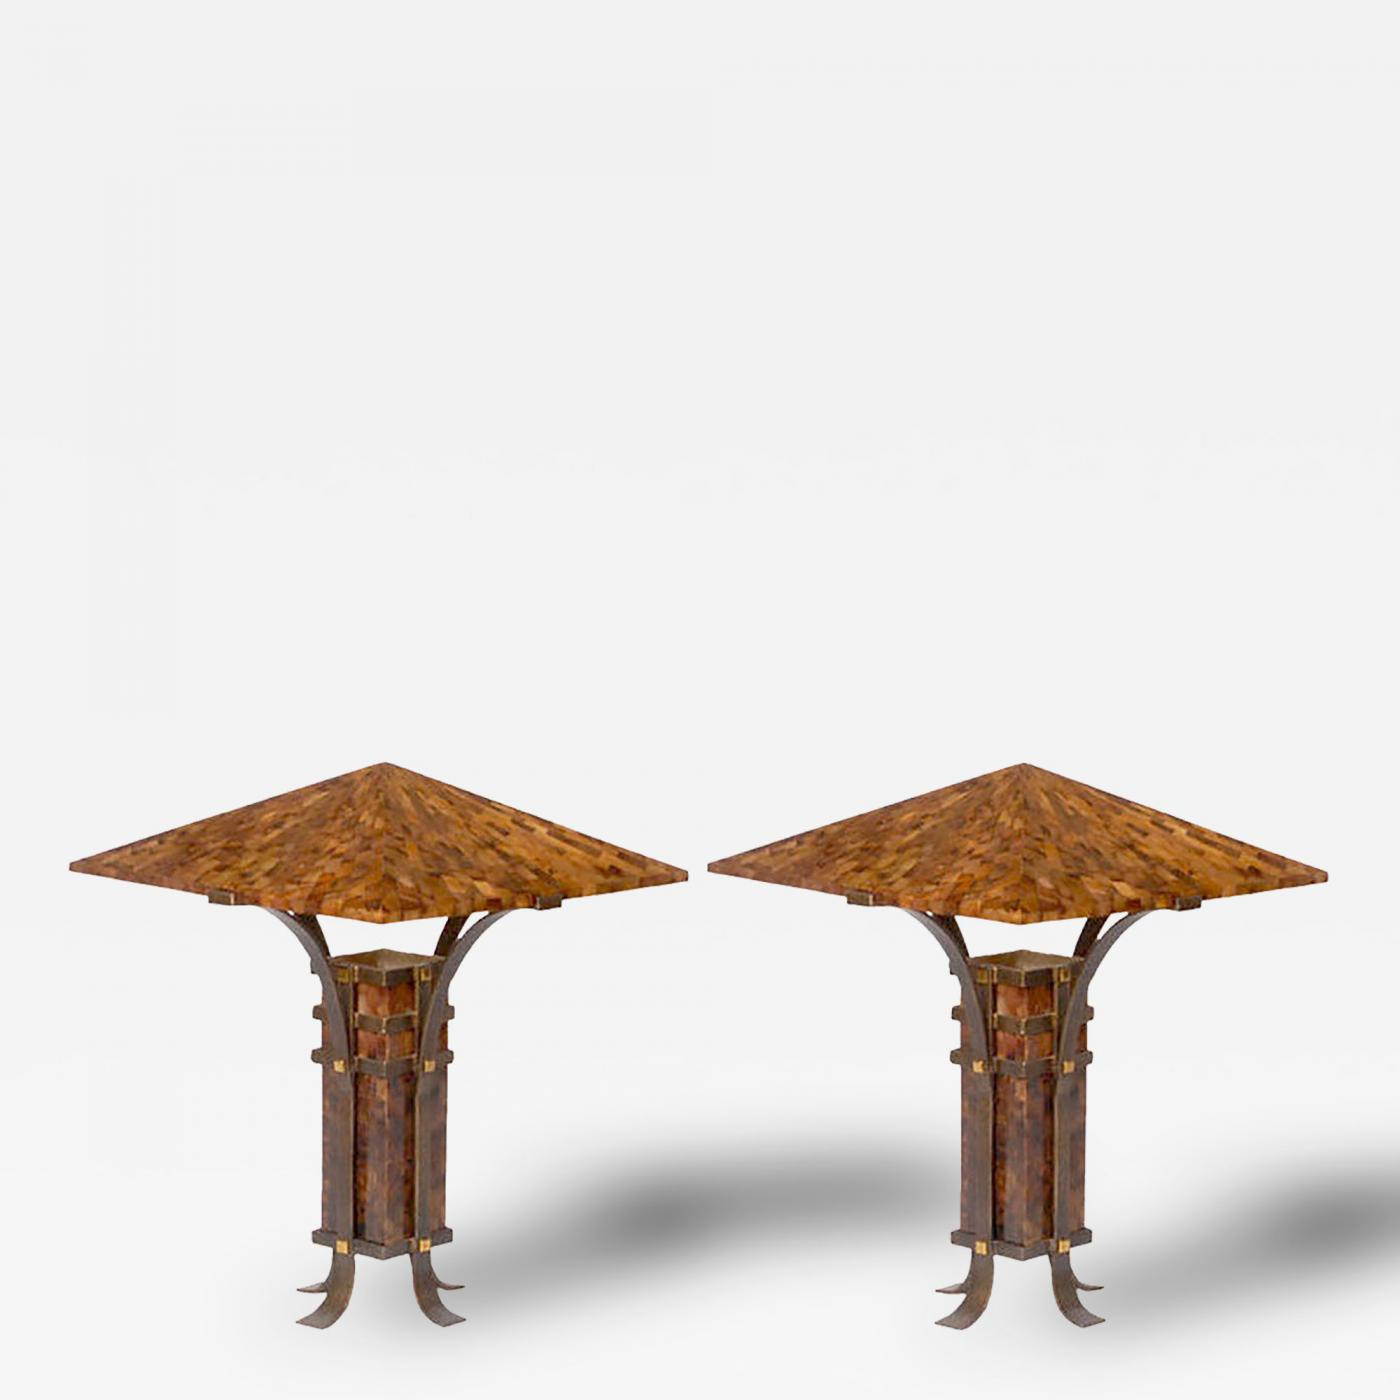 Maitland smith pair of maitland smith tessellated horn and iron listings furniture lighting table lamps geotapseo Choice Image